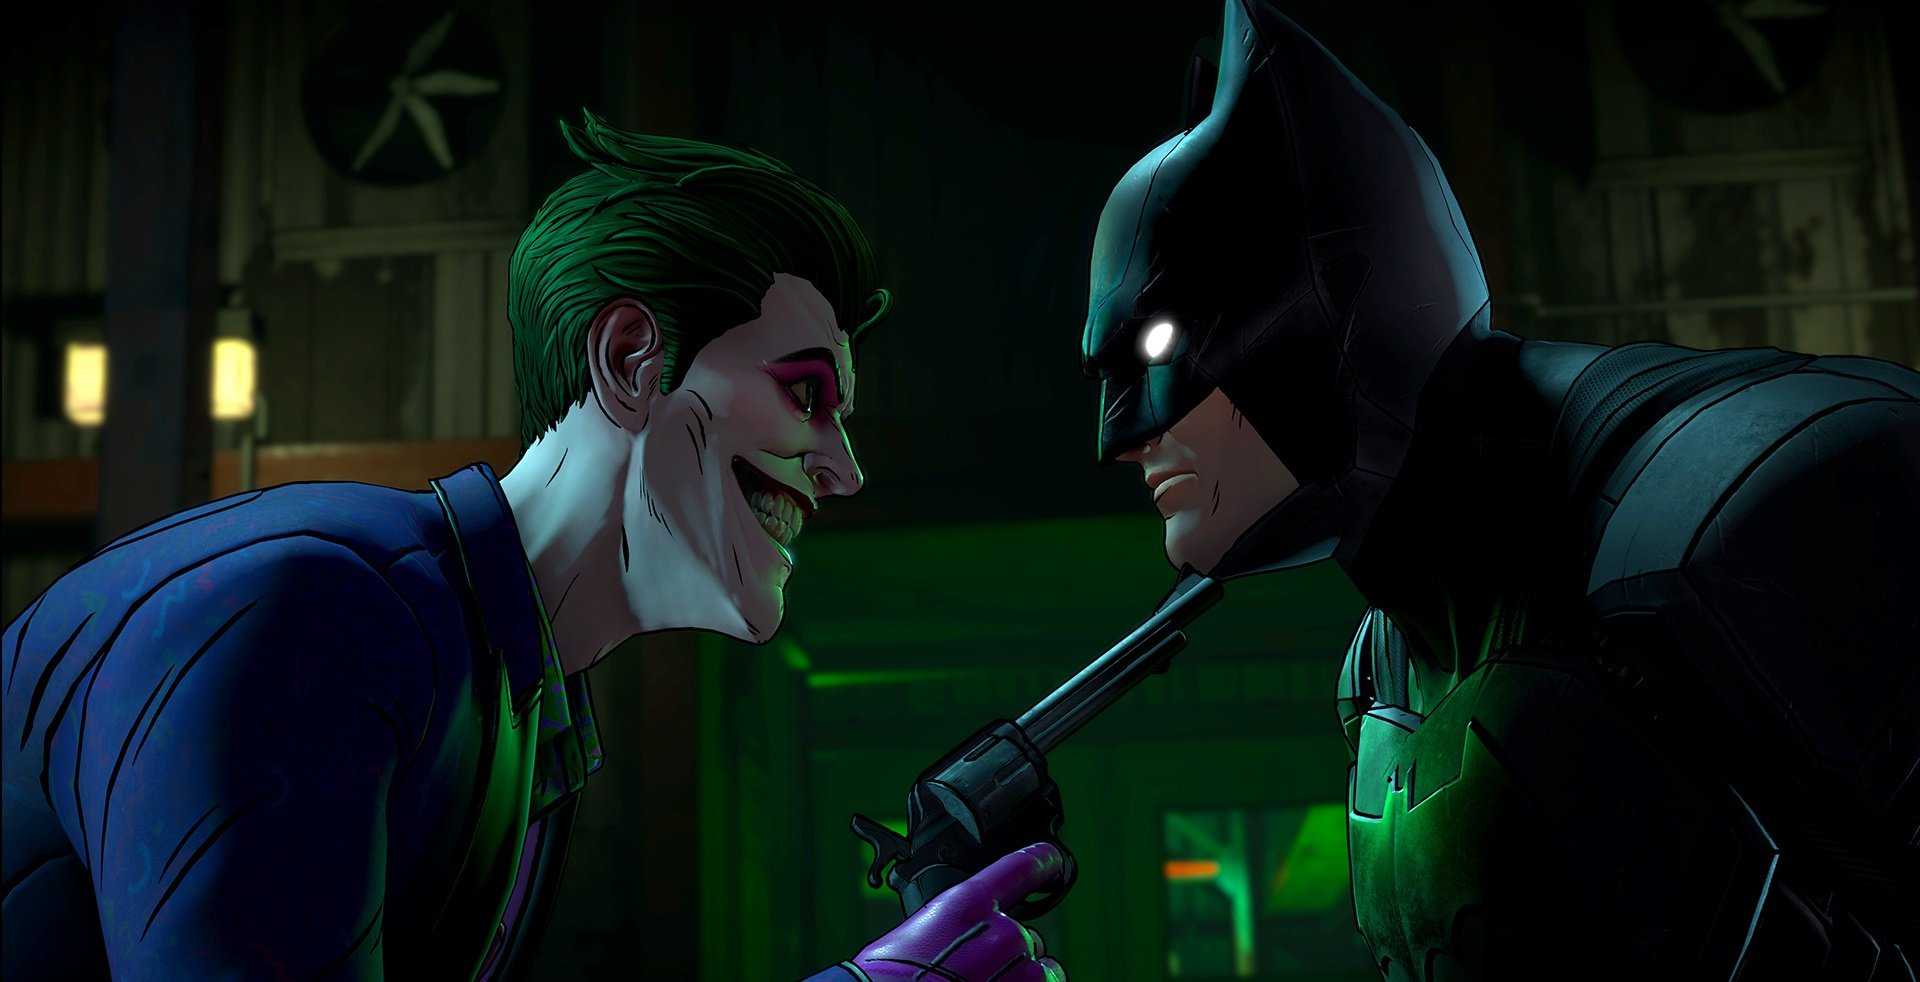 Batman: The Enemy Within - The Telltale Series - GOG Games